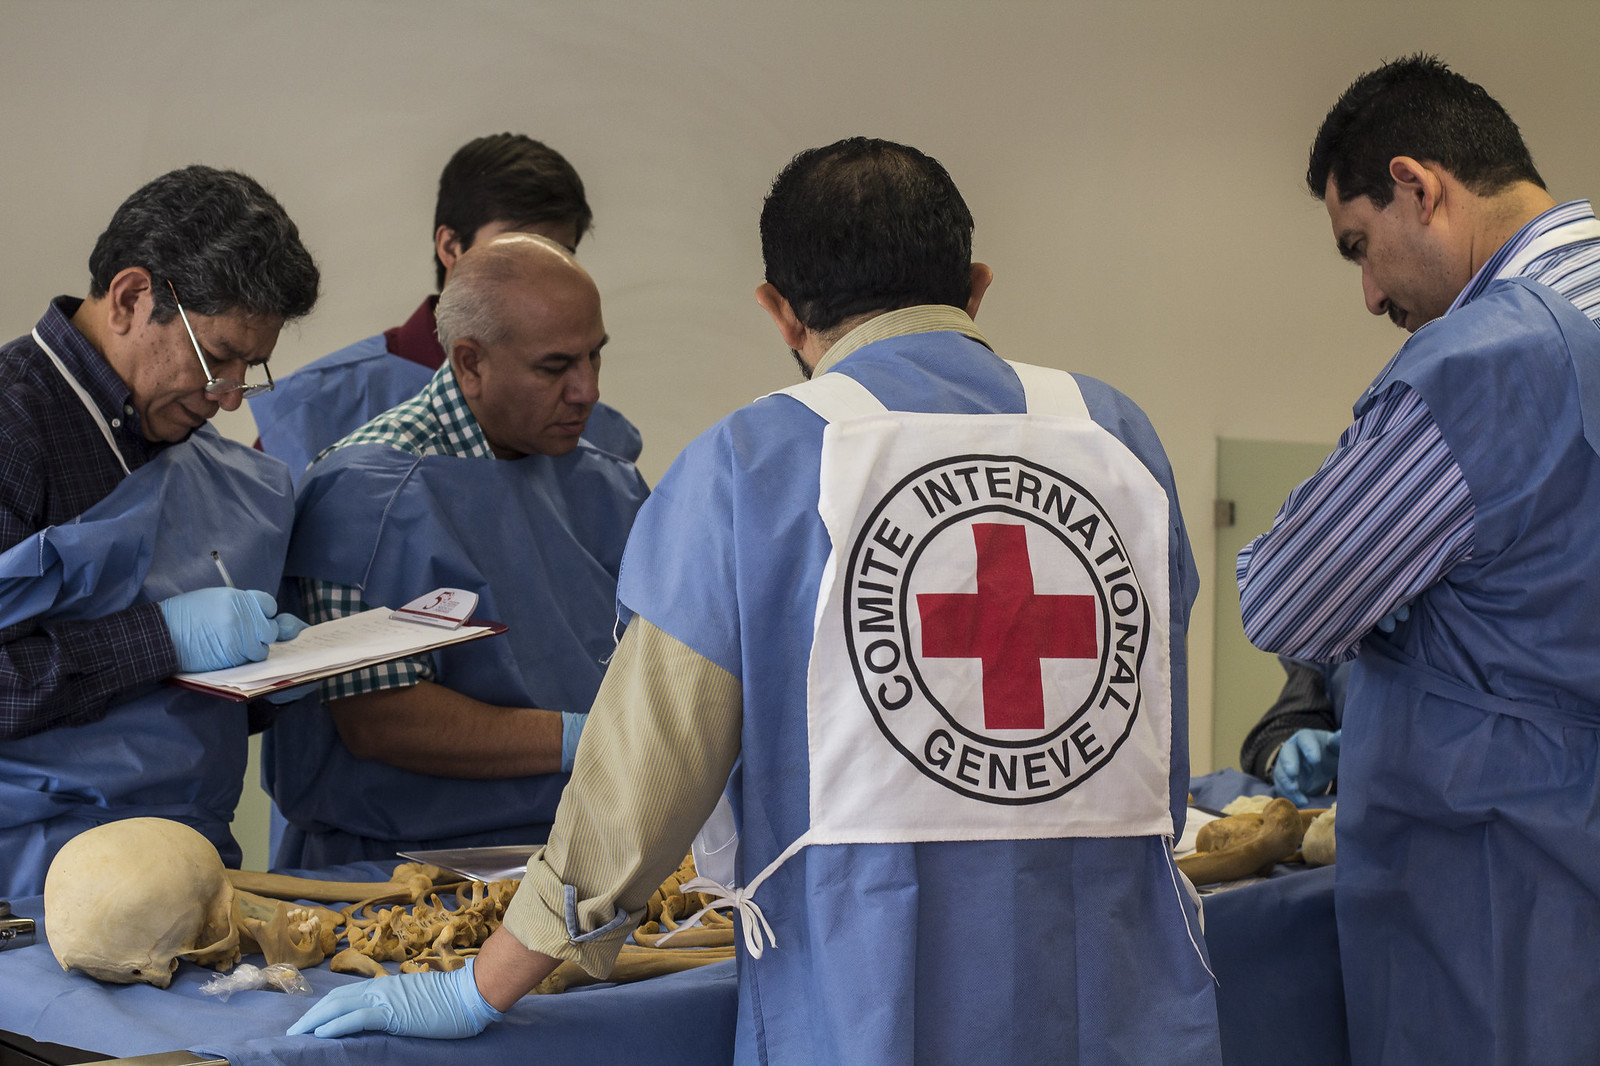 Forensic anthropologists working for the ICRC